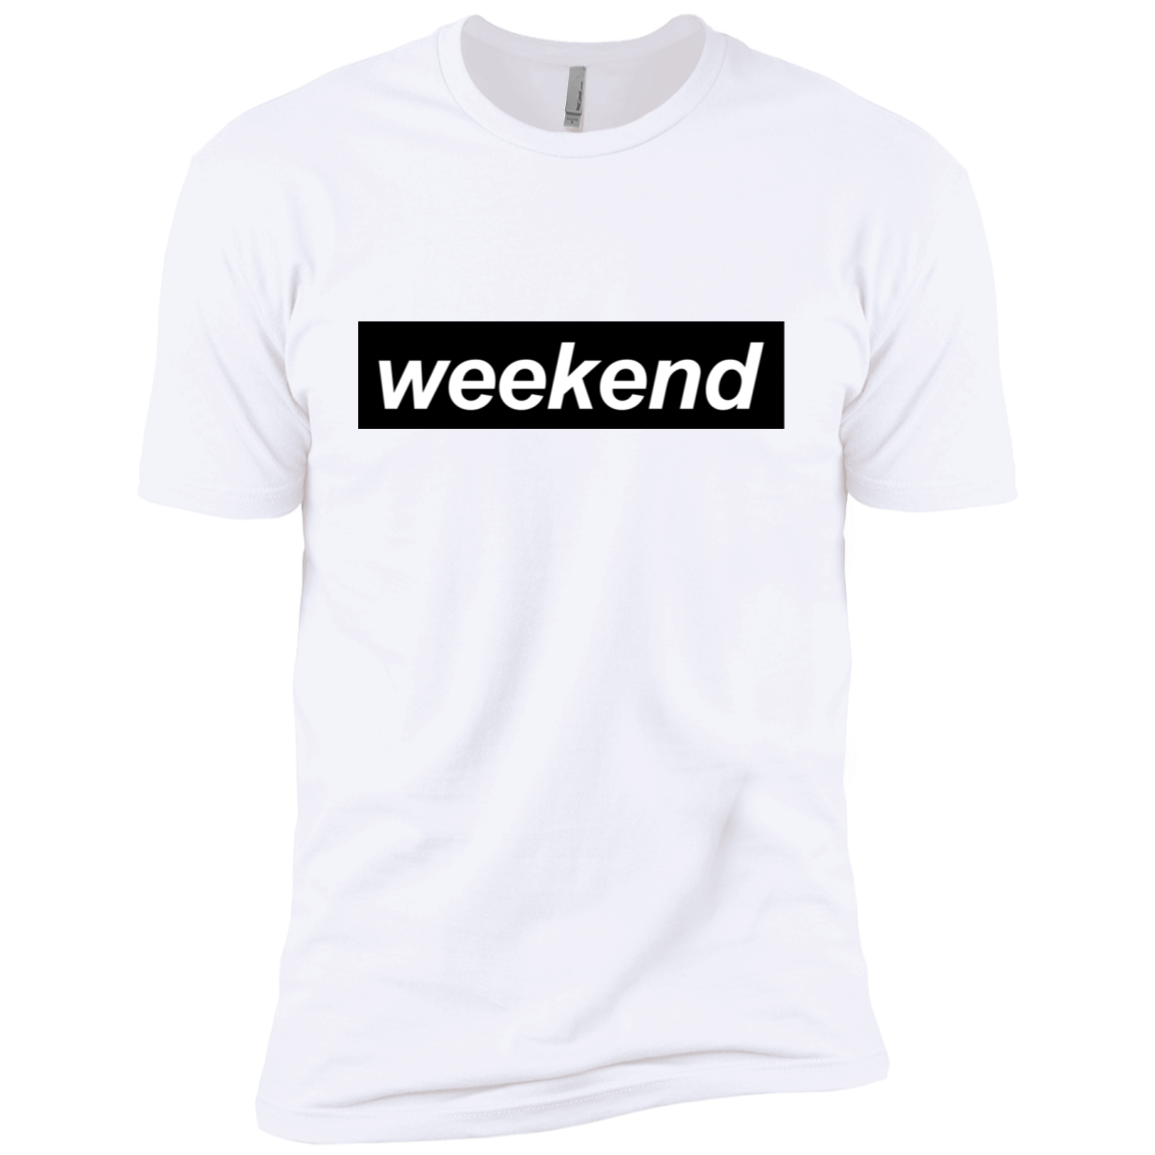 It's the Weekend Men's Classic Tee - Trendy Tees